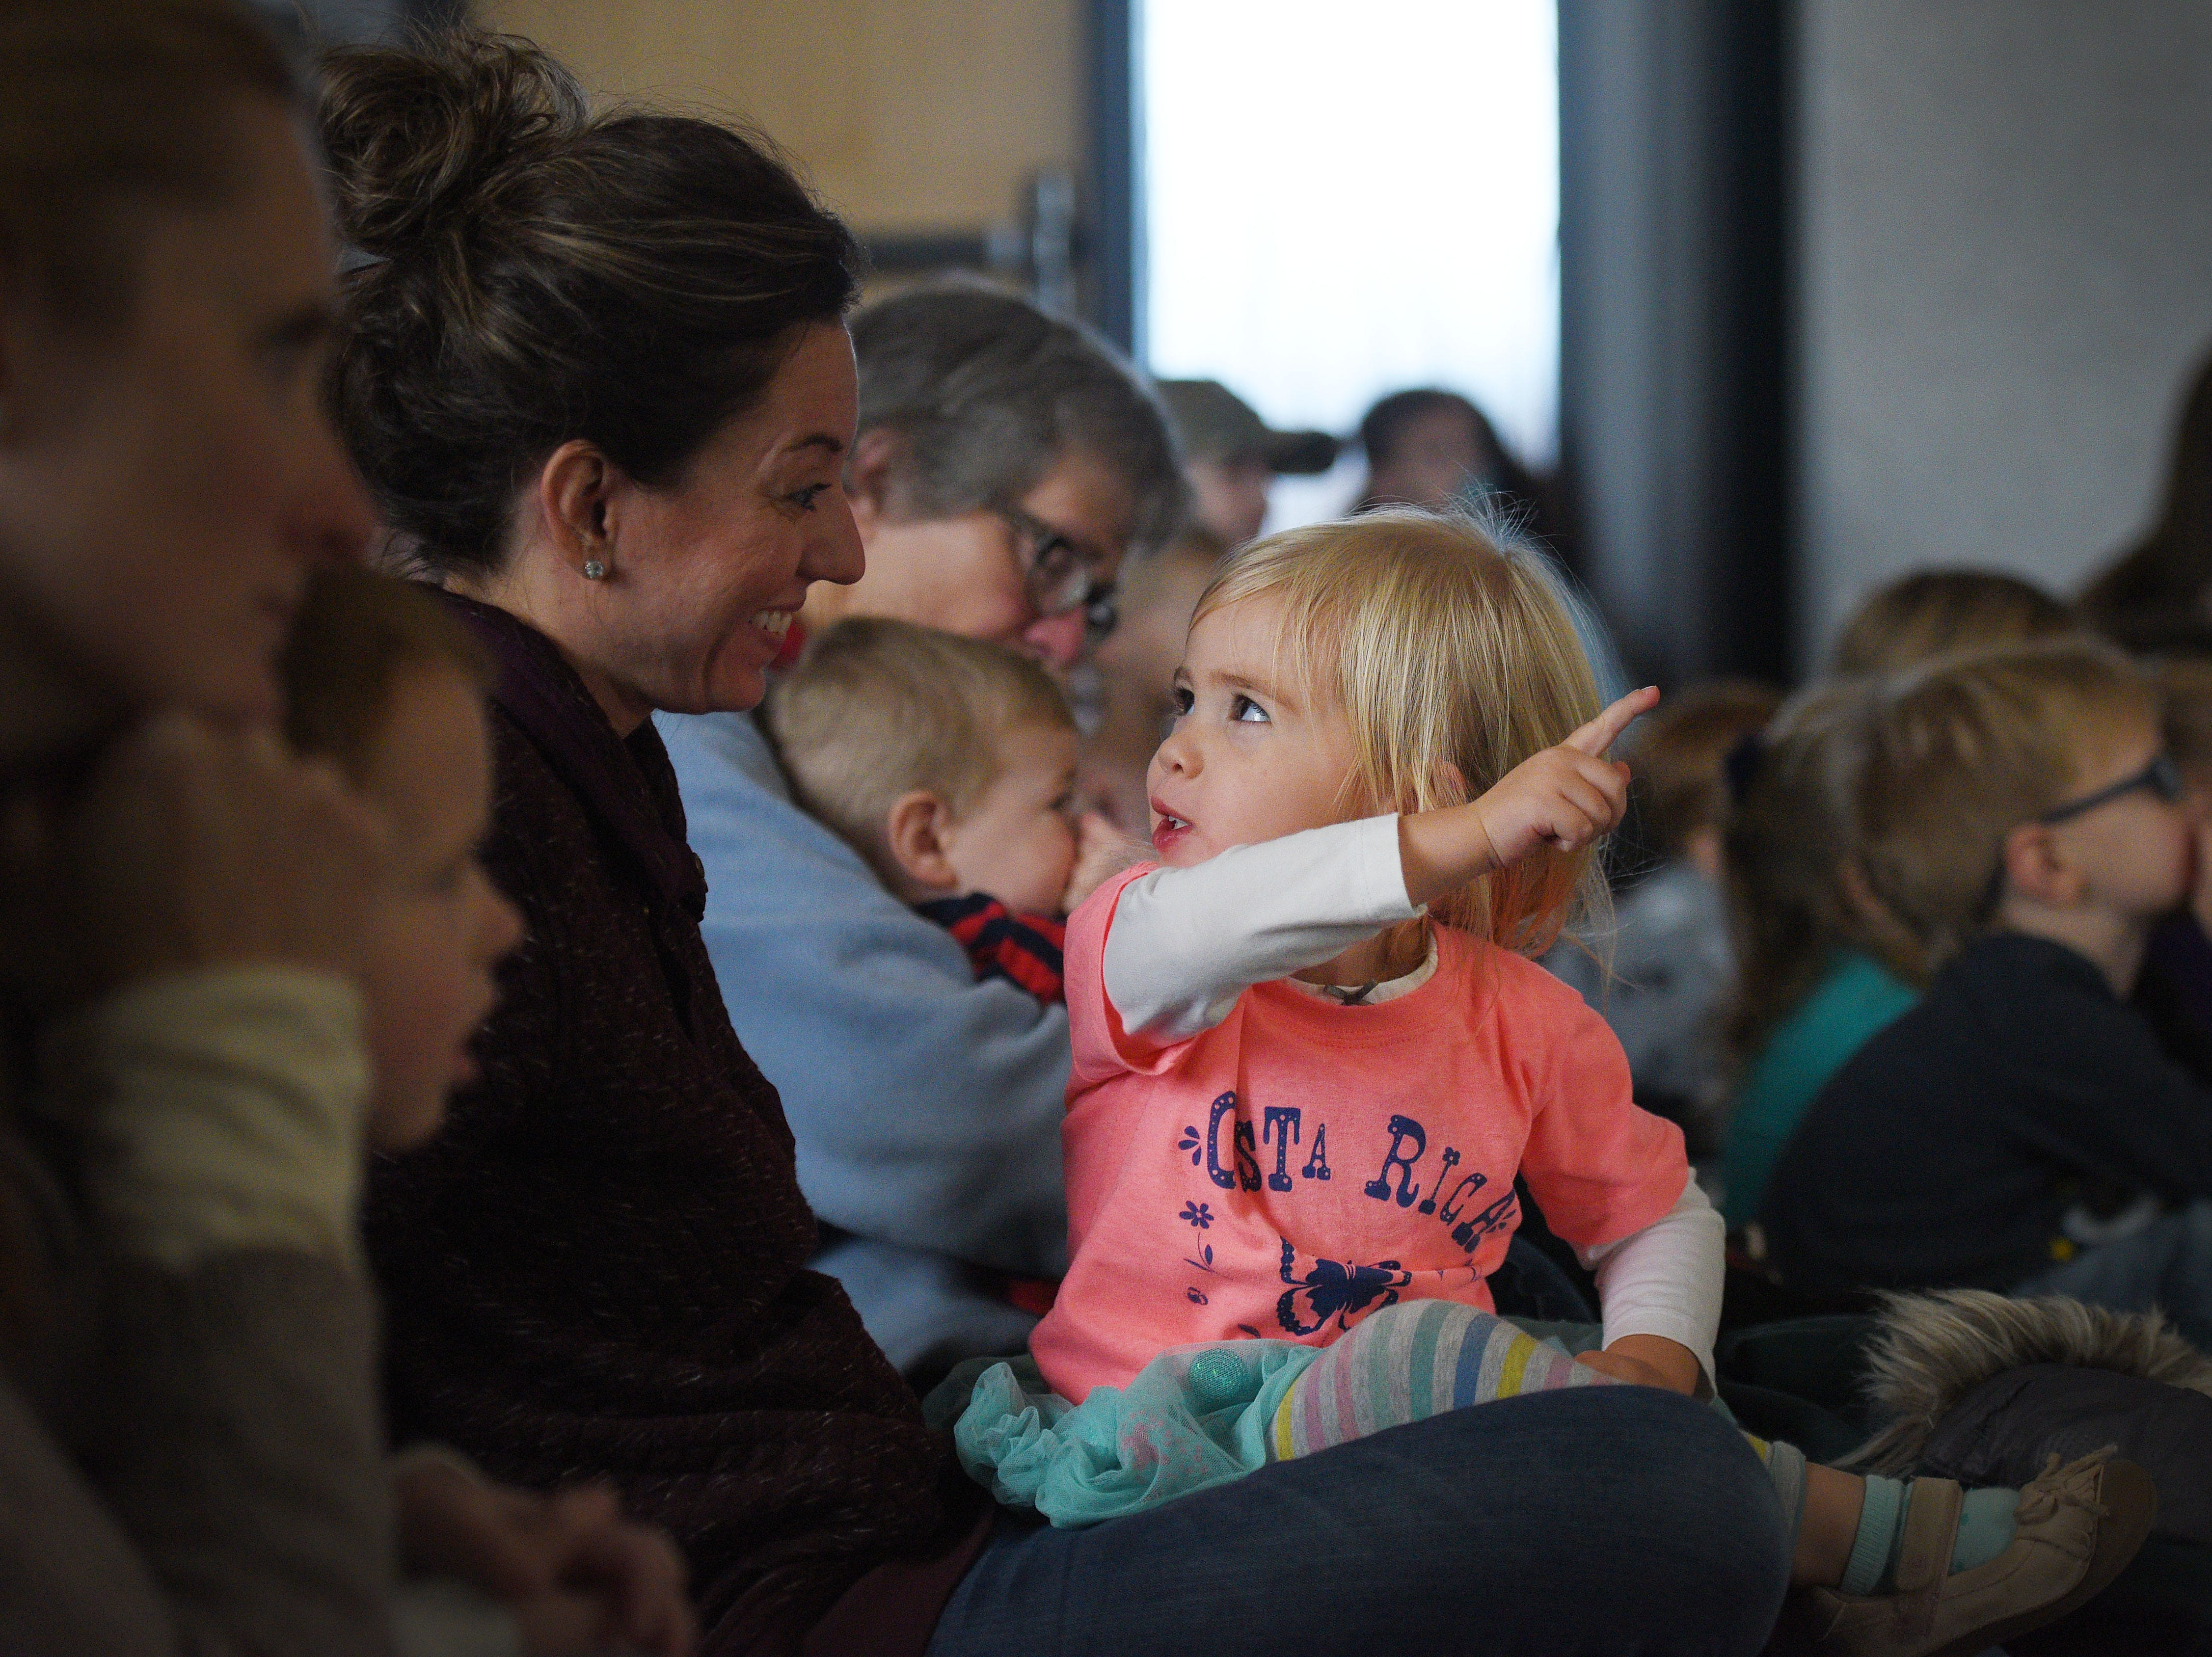 Amelia Neilson talks to her mom Melissa during The Christmas Gift puppet show at the Prairie West Branch Wednesday, Dec. 5, in Sioux Falls.